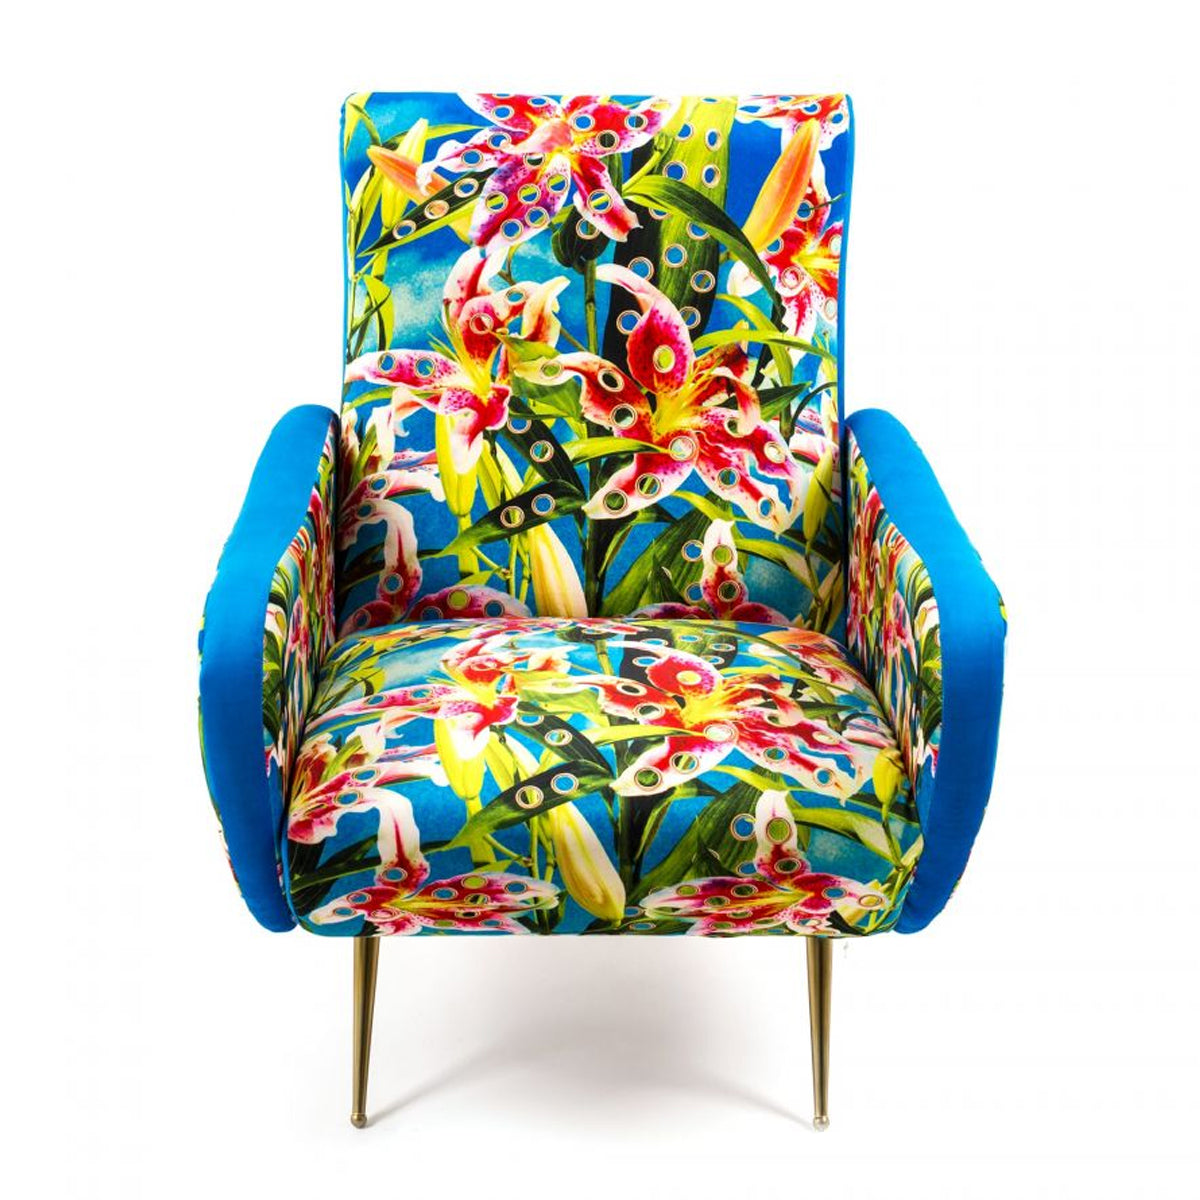 Seletti X Toiletpaper Magazine Armchair 'Flowers with holes'